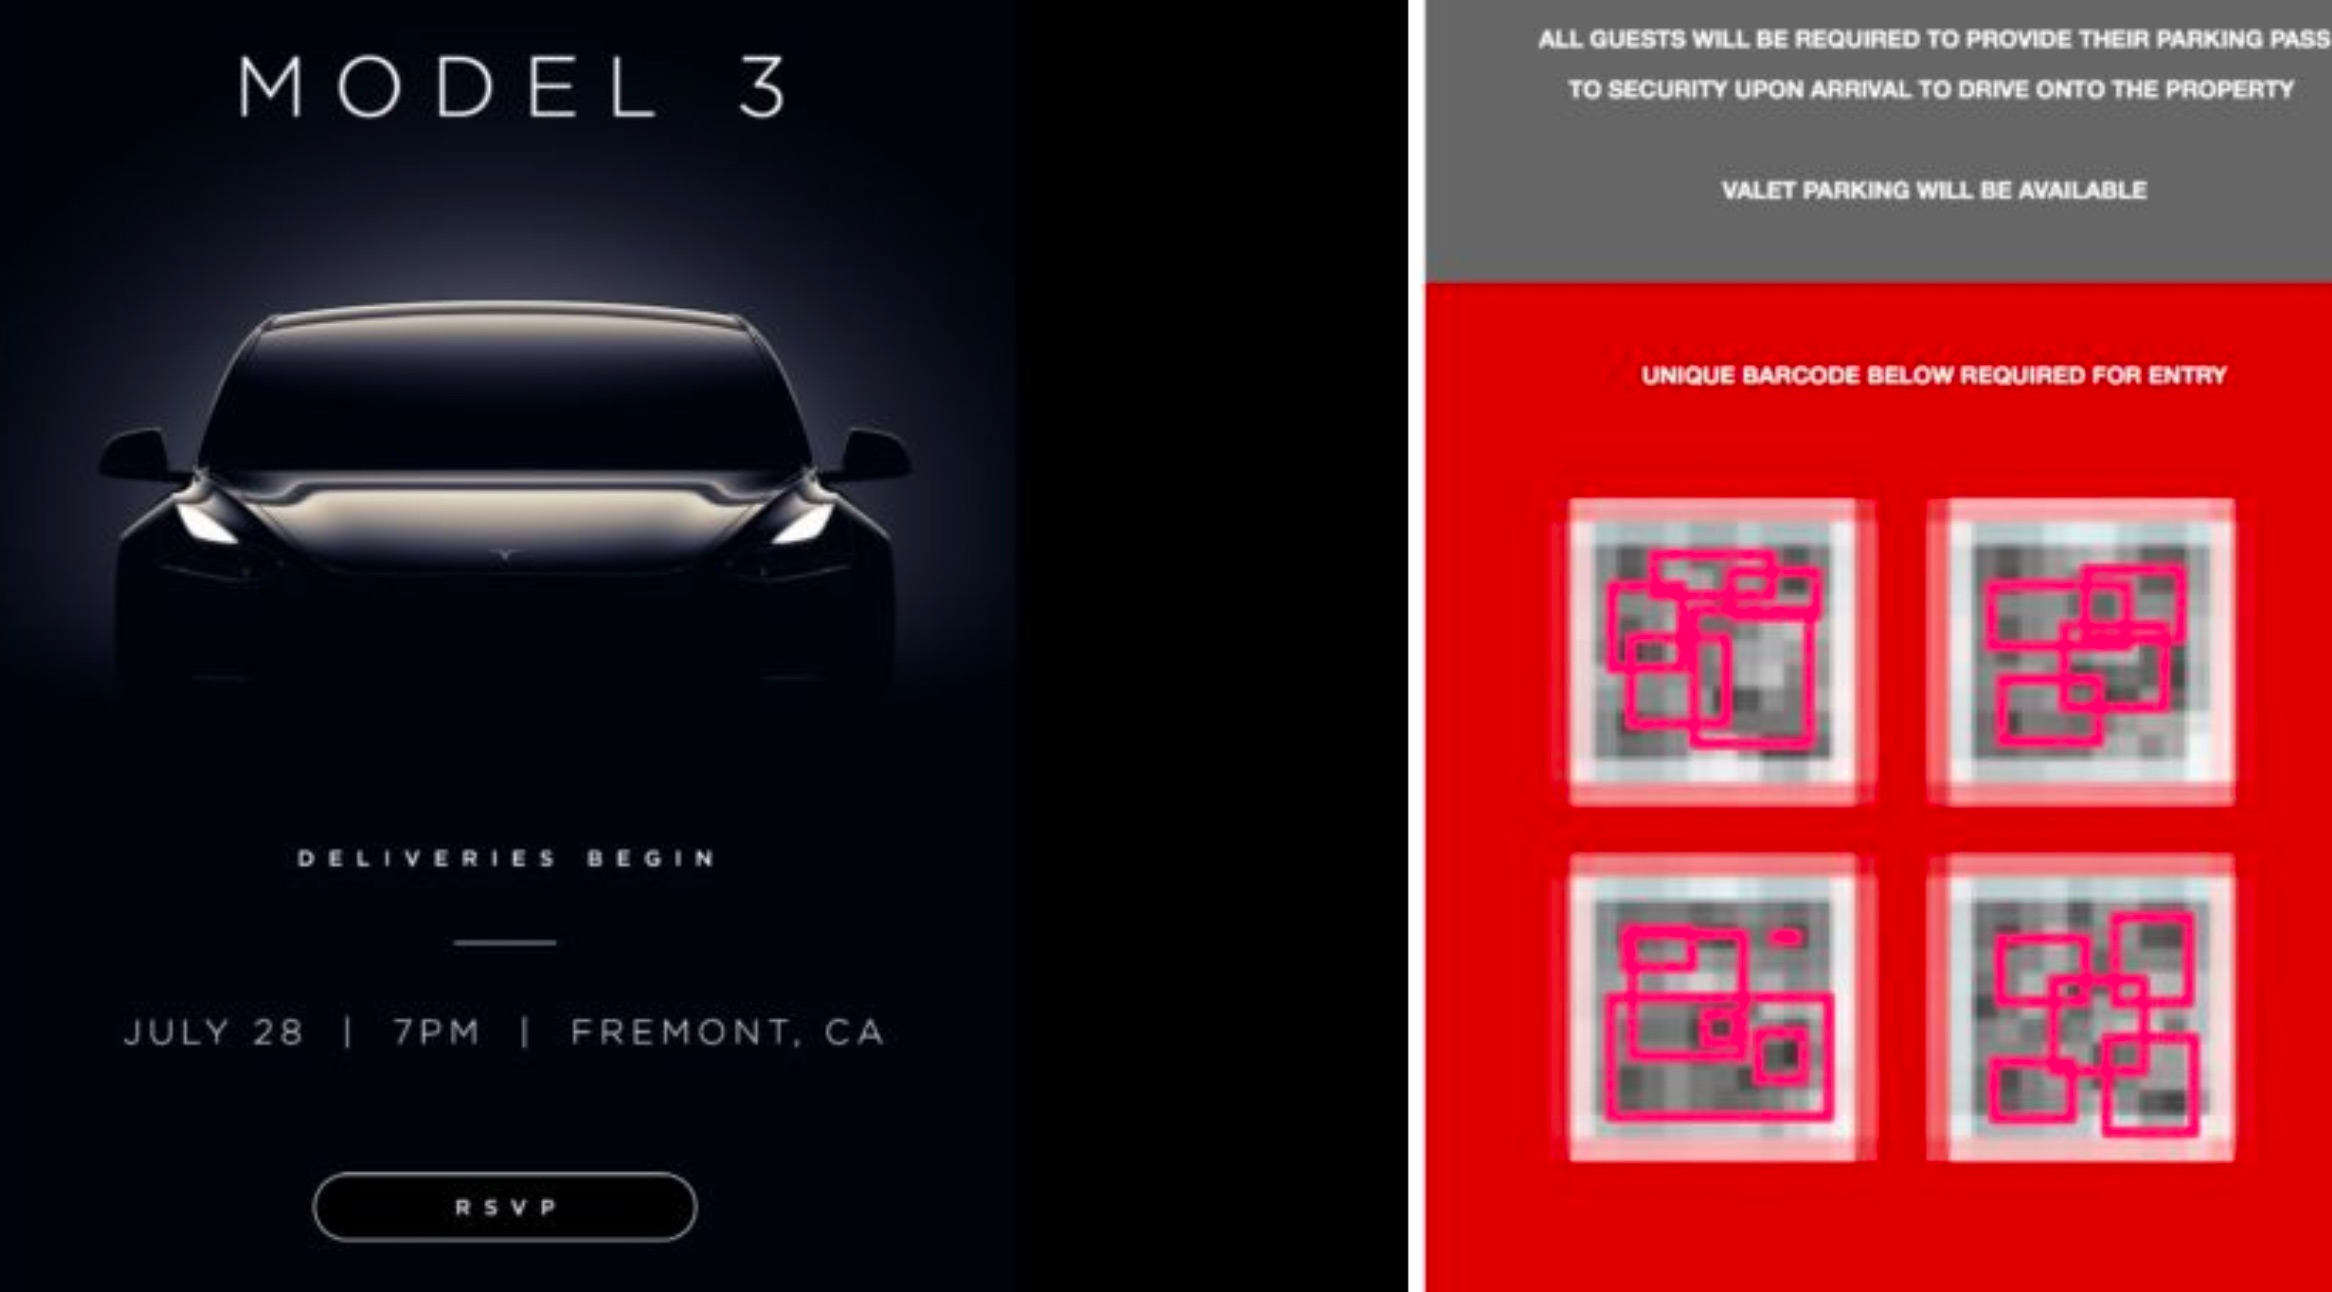 Tesla streamlines Model 3 event check-in process with custom QR code ...